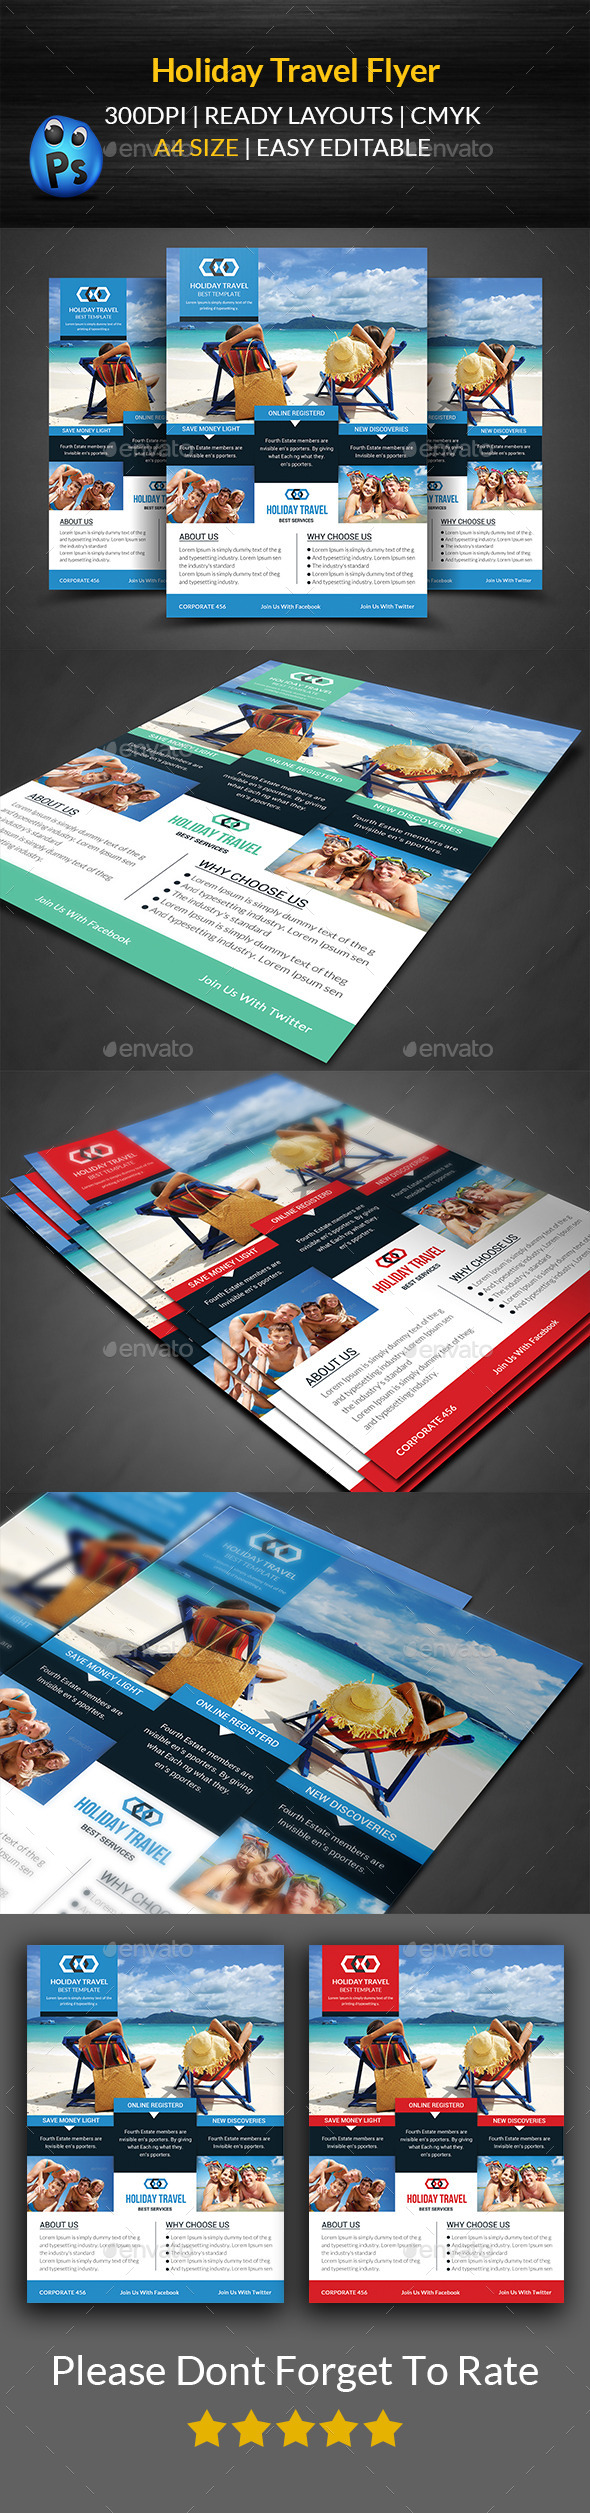 GraphicRiver Holiday Travel Flyer Print Templates 11874293